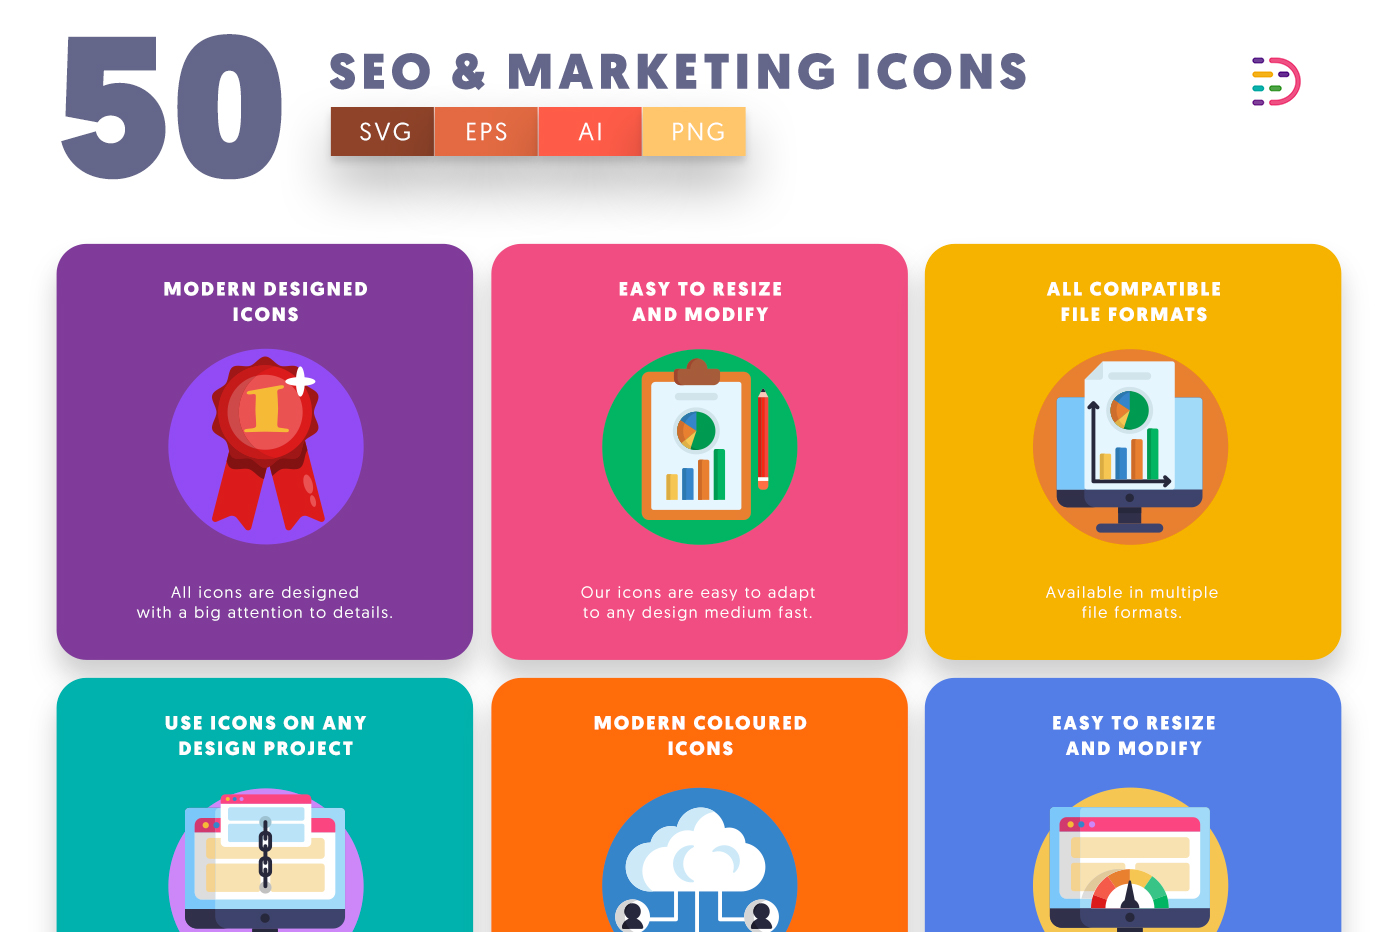 50 Seo & Marketing Icons with colored backgrounds